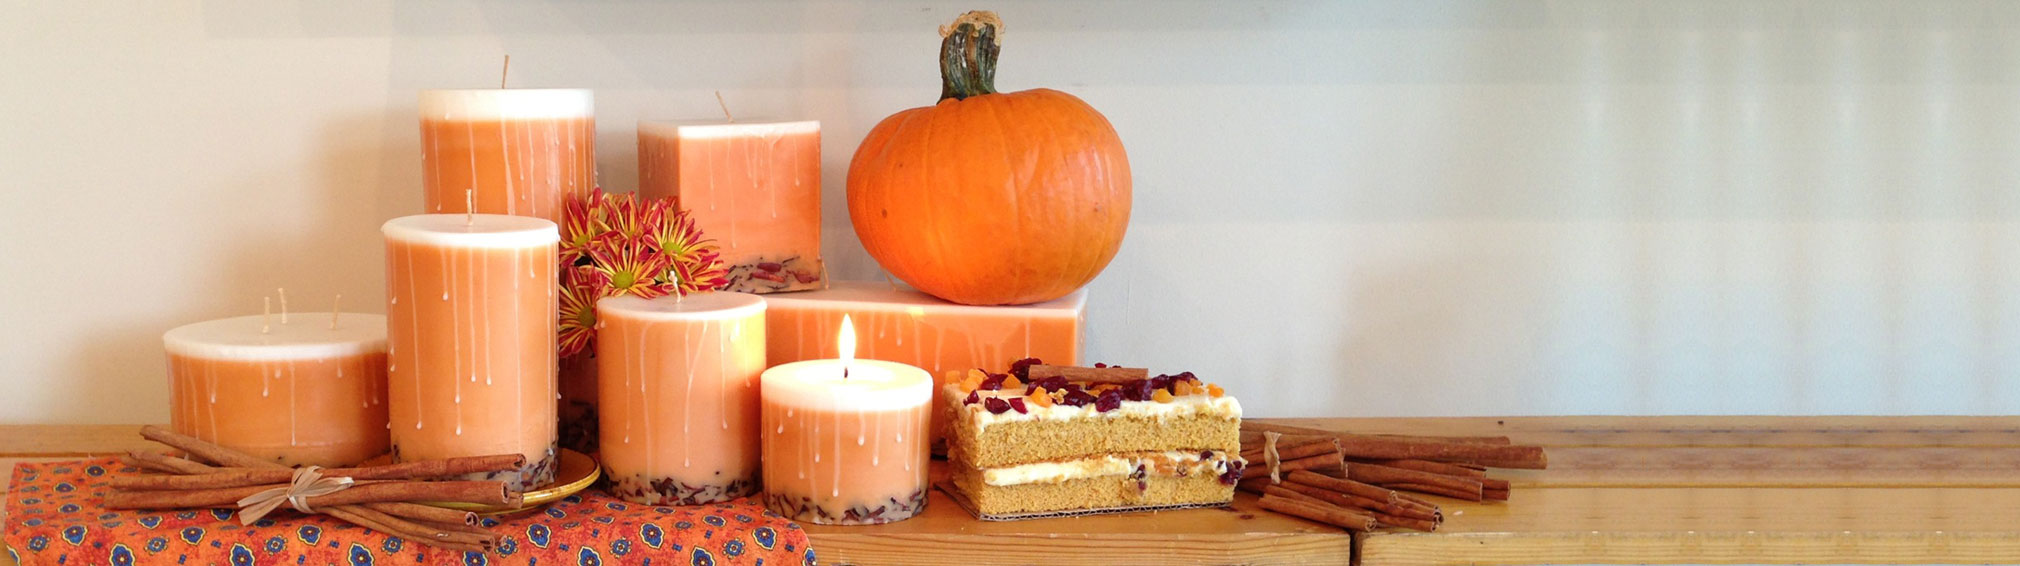 Spiced-Pumpkin-HomePage-Banner-with-text-7